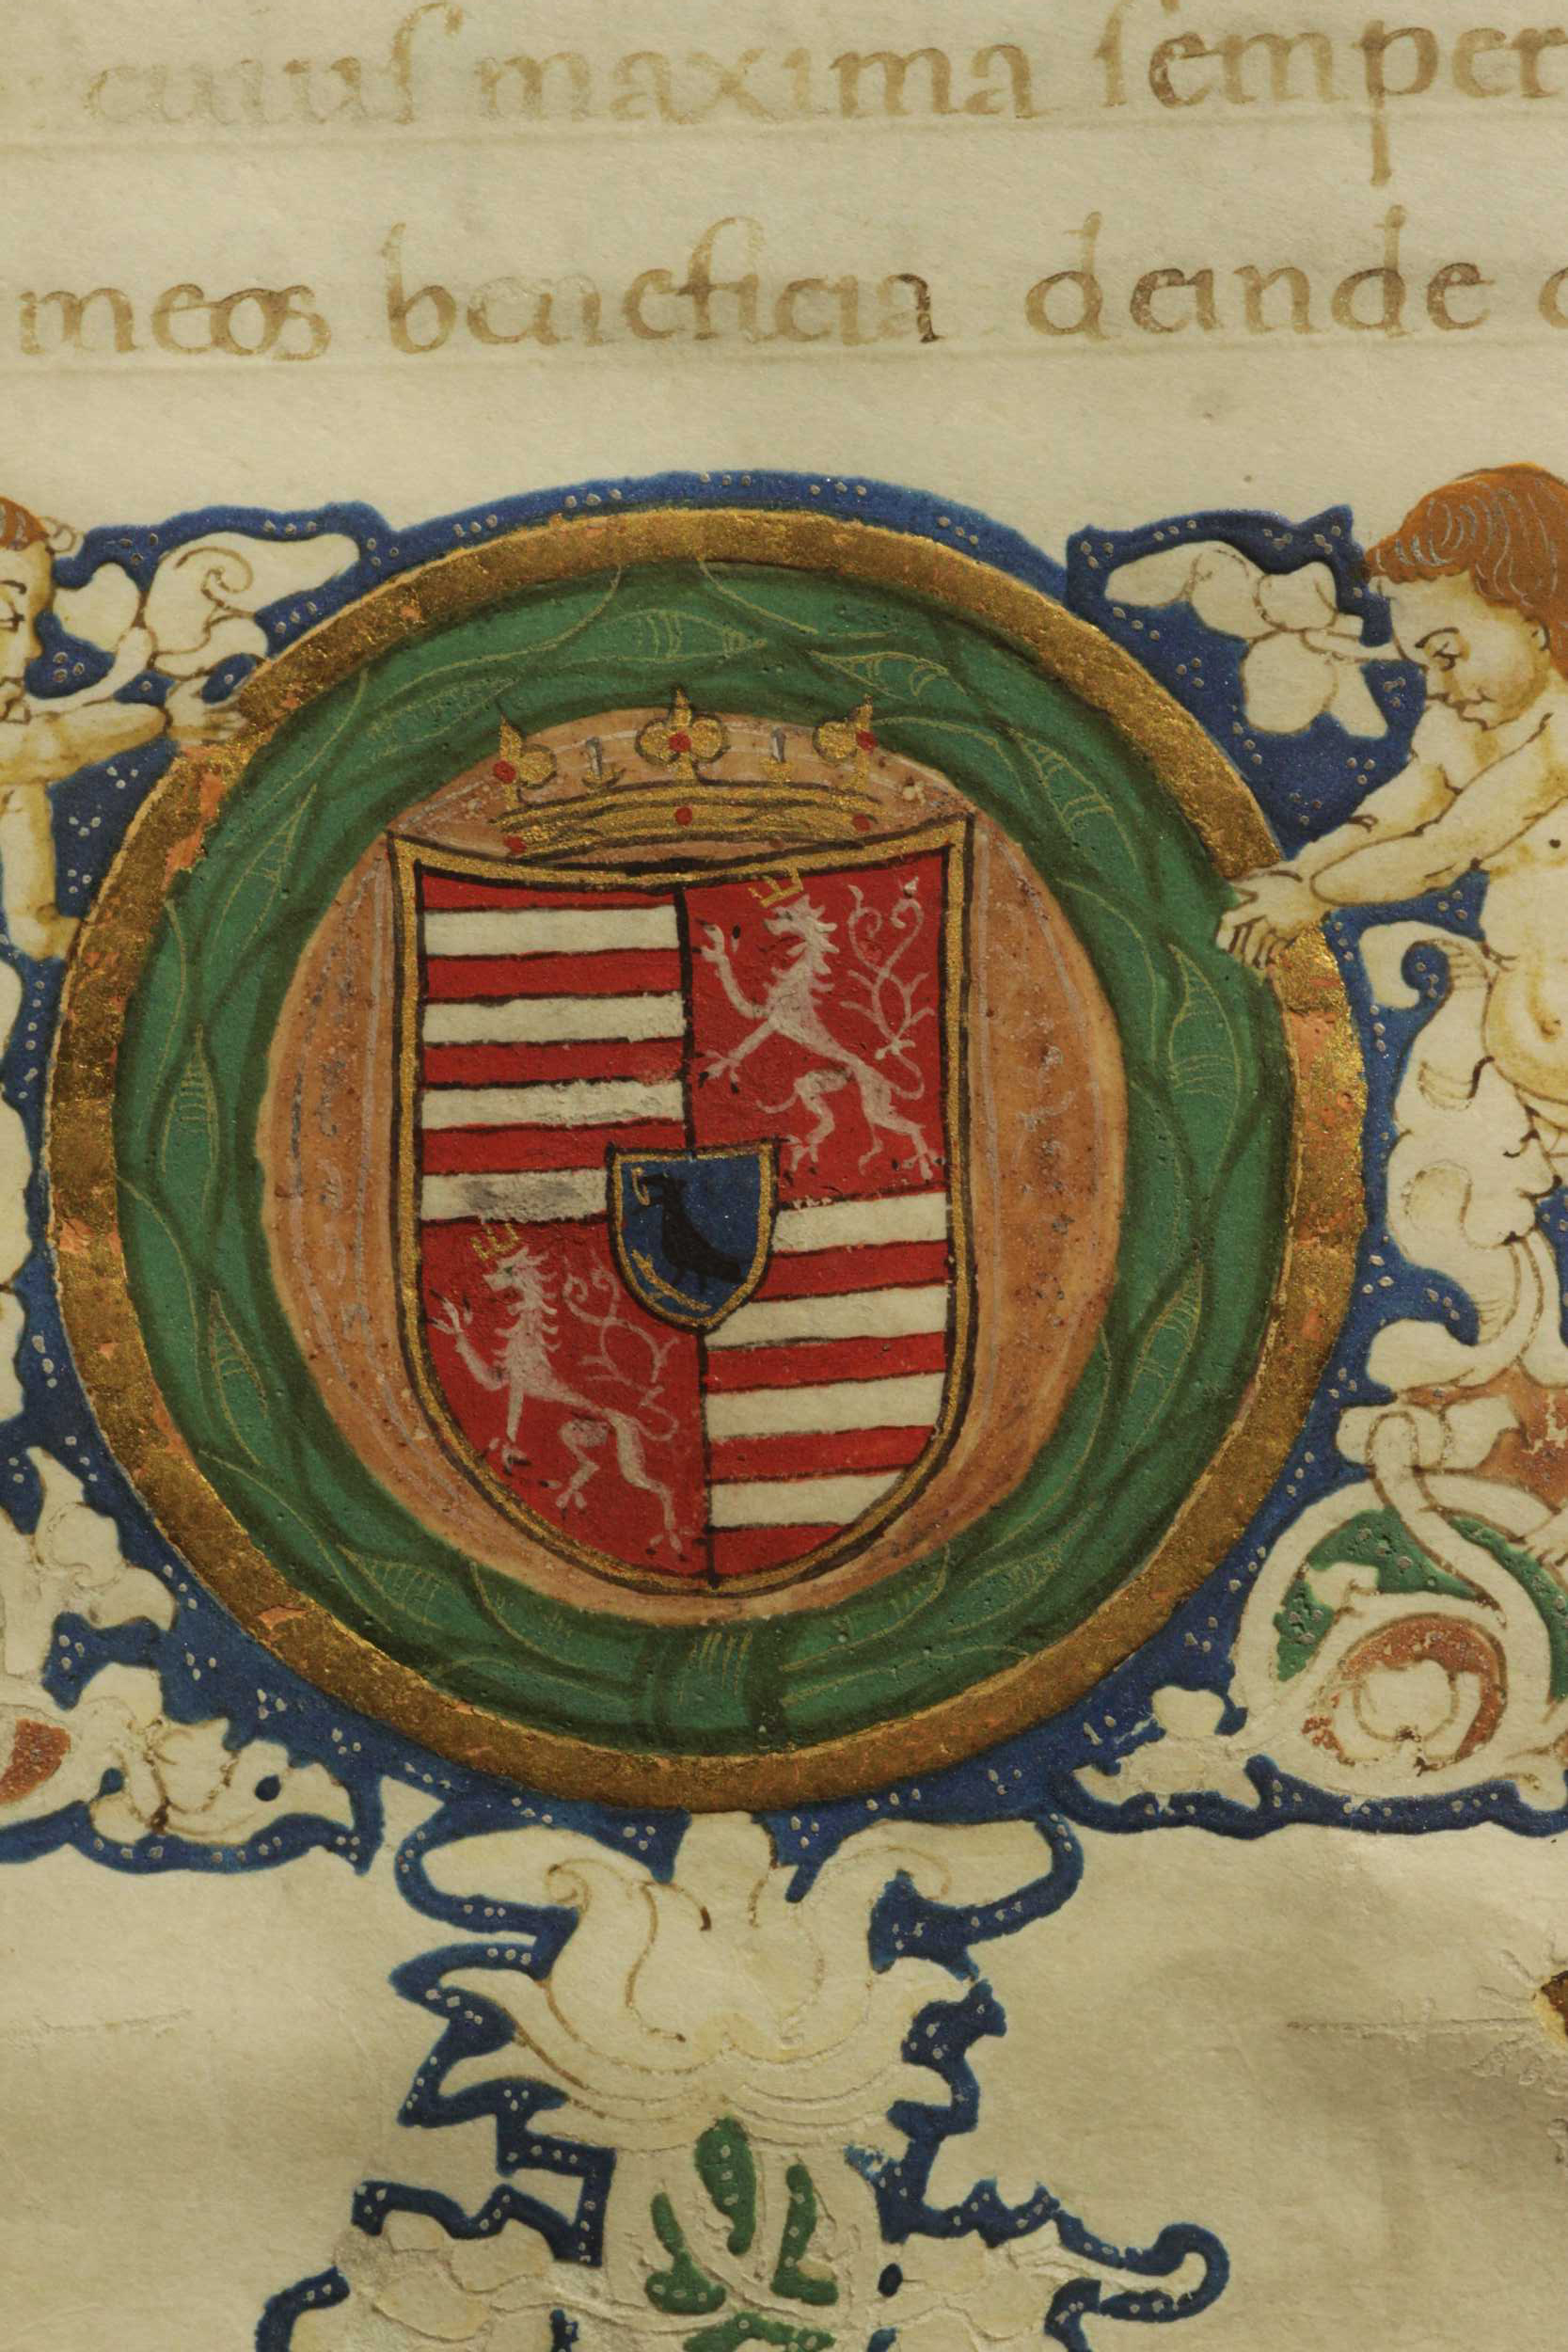 The contour of the coat of arms and the crown were painted with shell gold (gold paint), while the circular stripe forming the external border was grounded with bolus and covered with gold leaf